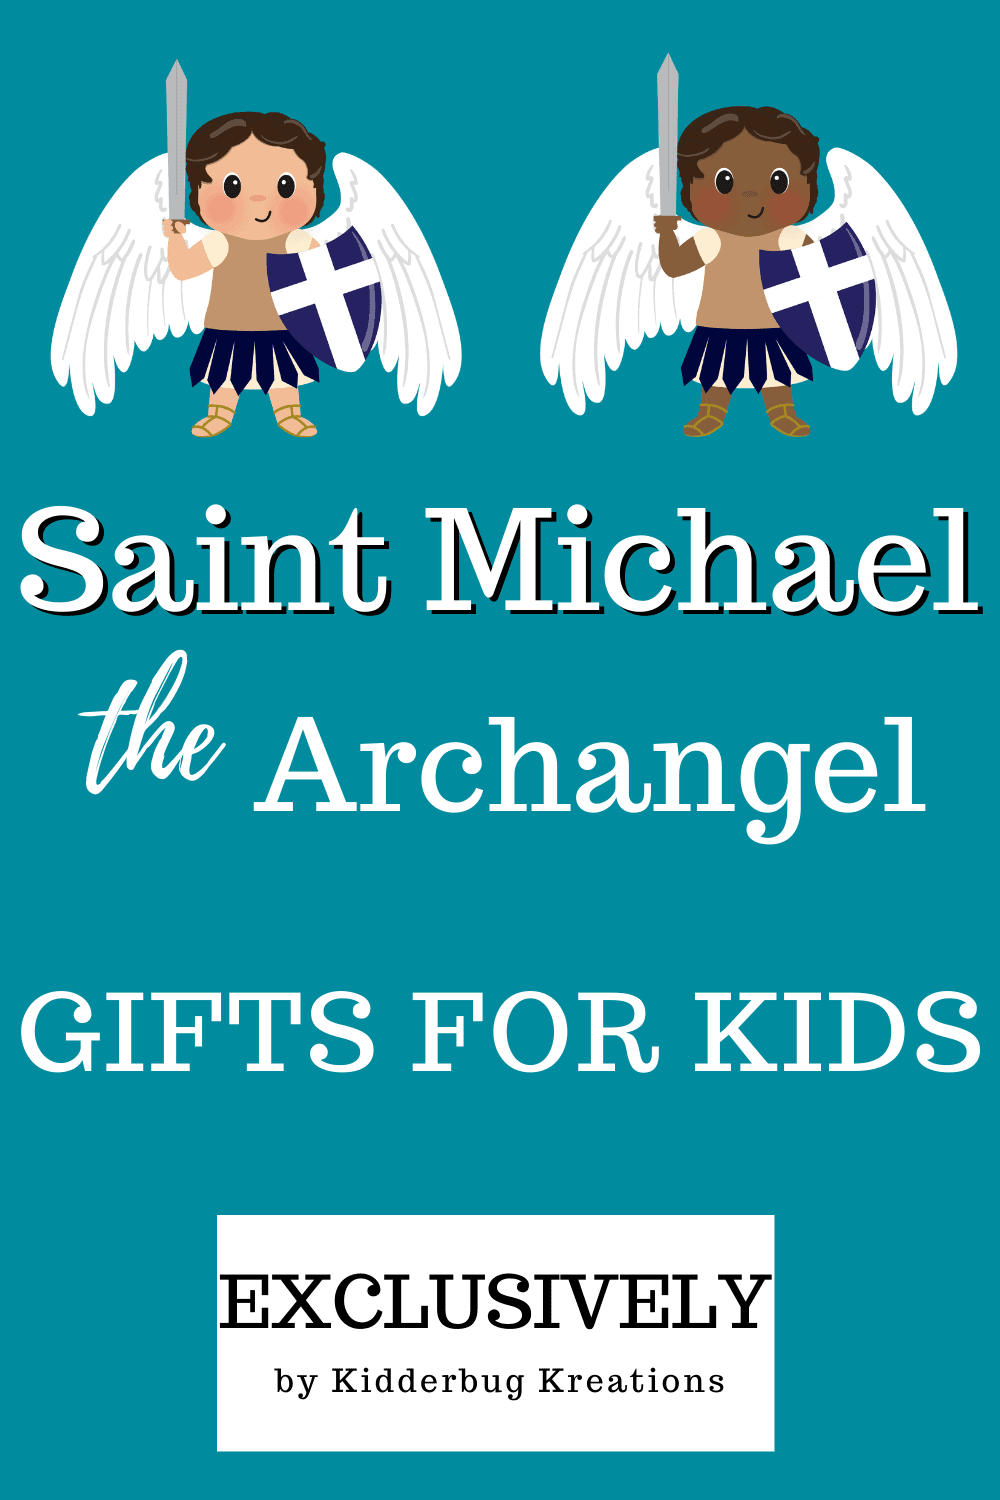 Best Unique Saint Michael the Archangel Gifts for Kids